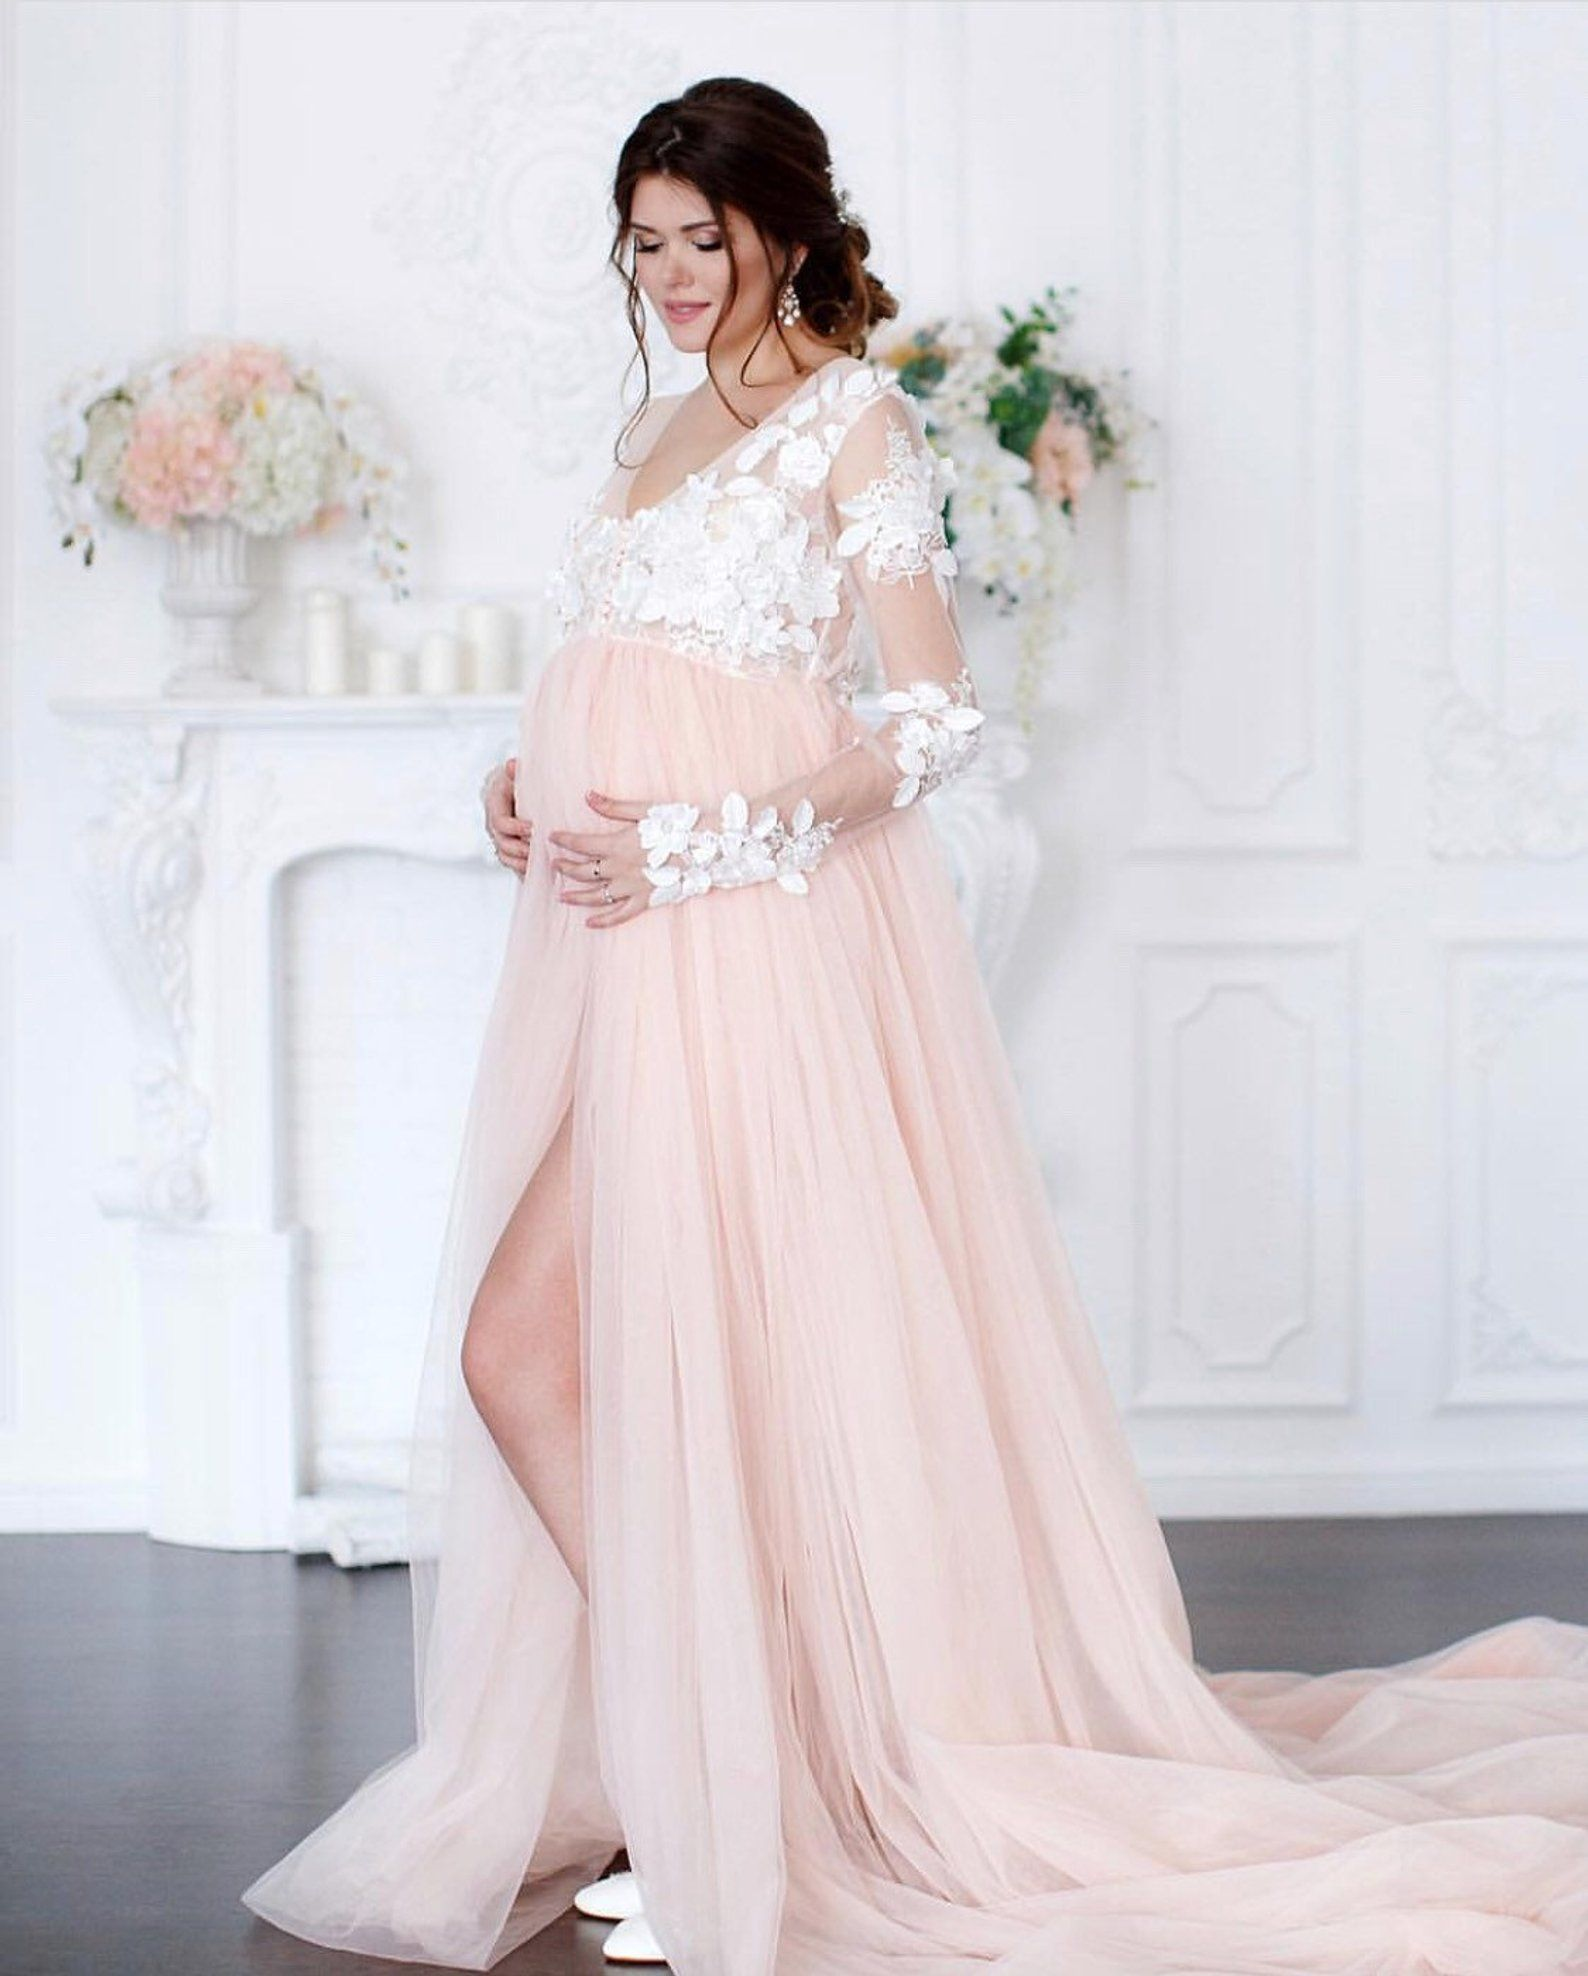 Pin On Maternity And Baby Style